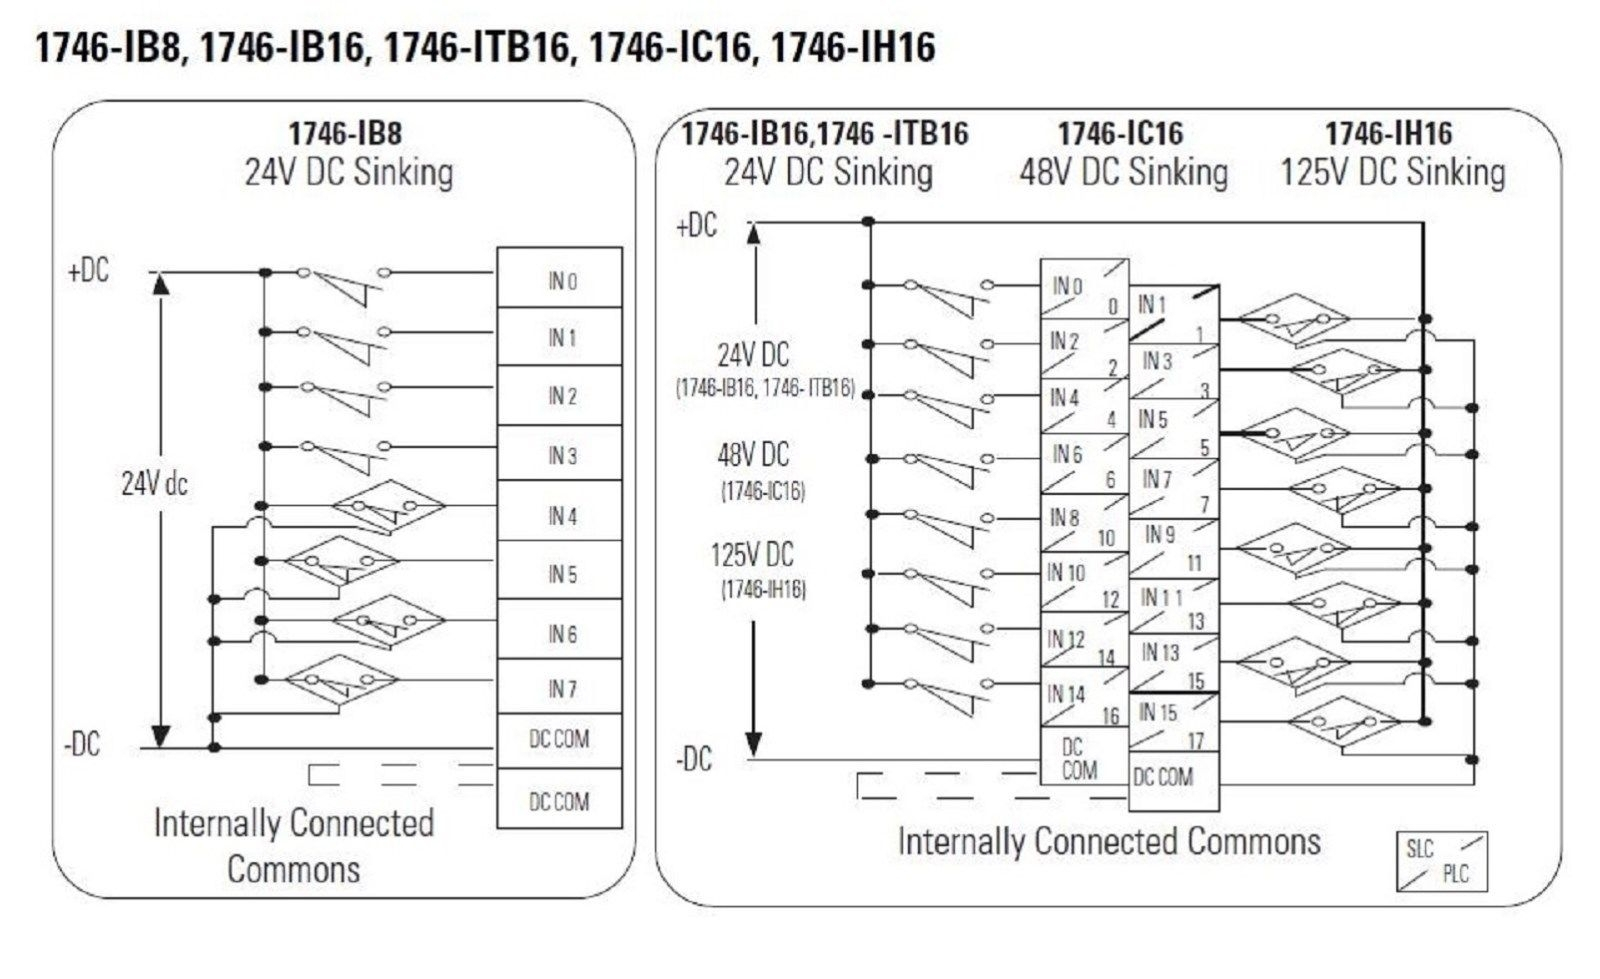 1746 ow16 wiring diagram Download-24v Dc Good V Dc Motor with 24v Dc Acdc and Dcdc Converters with Allen 1746 Ox8 Wiring Diagram New 2003 20-o